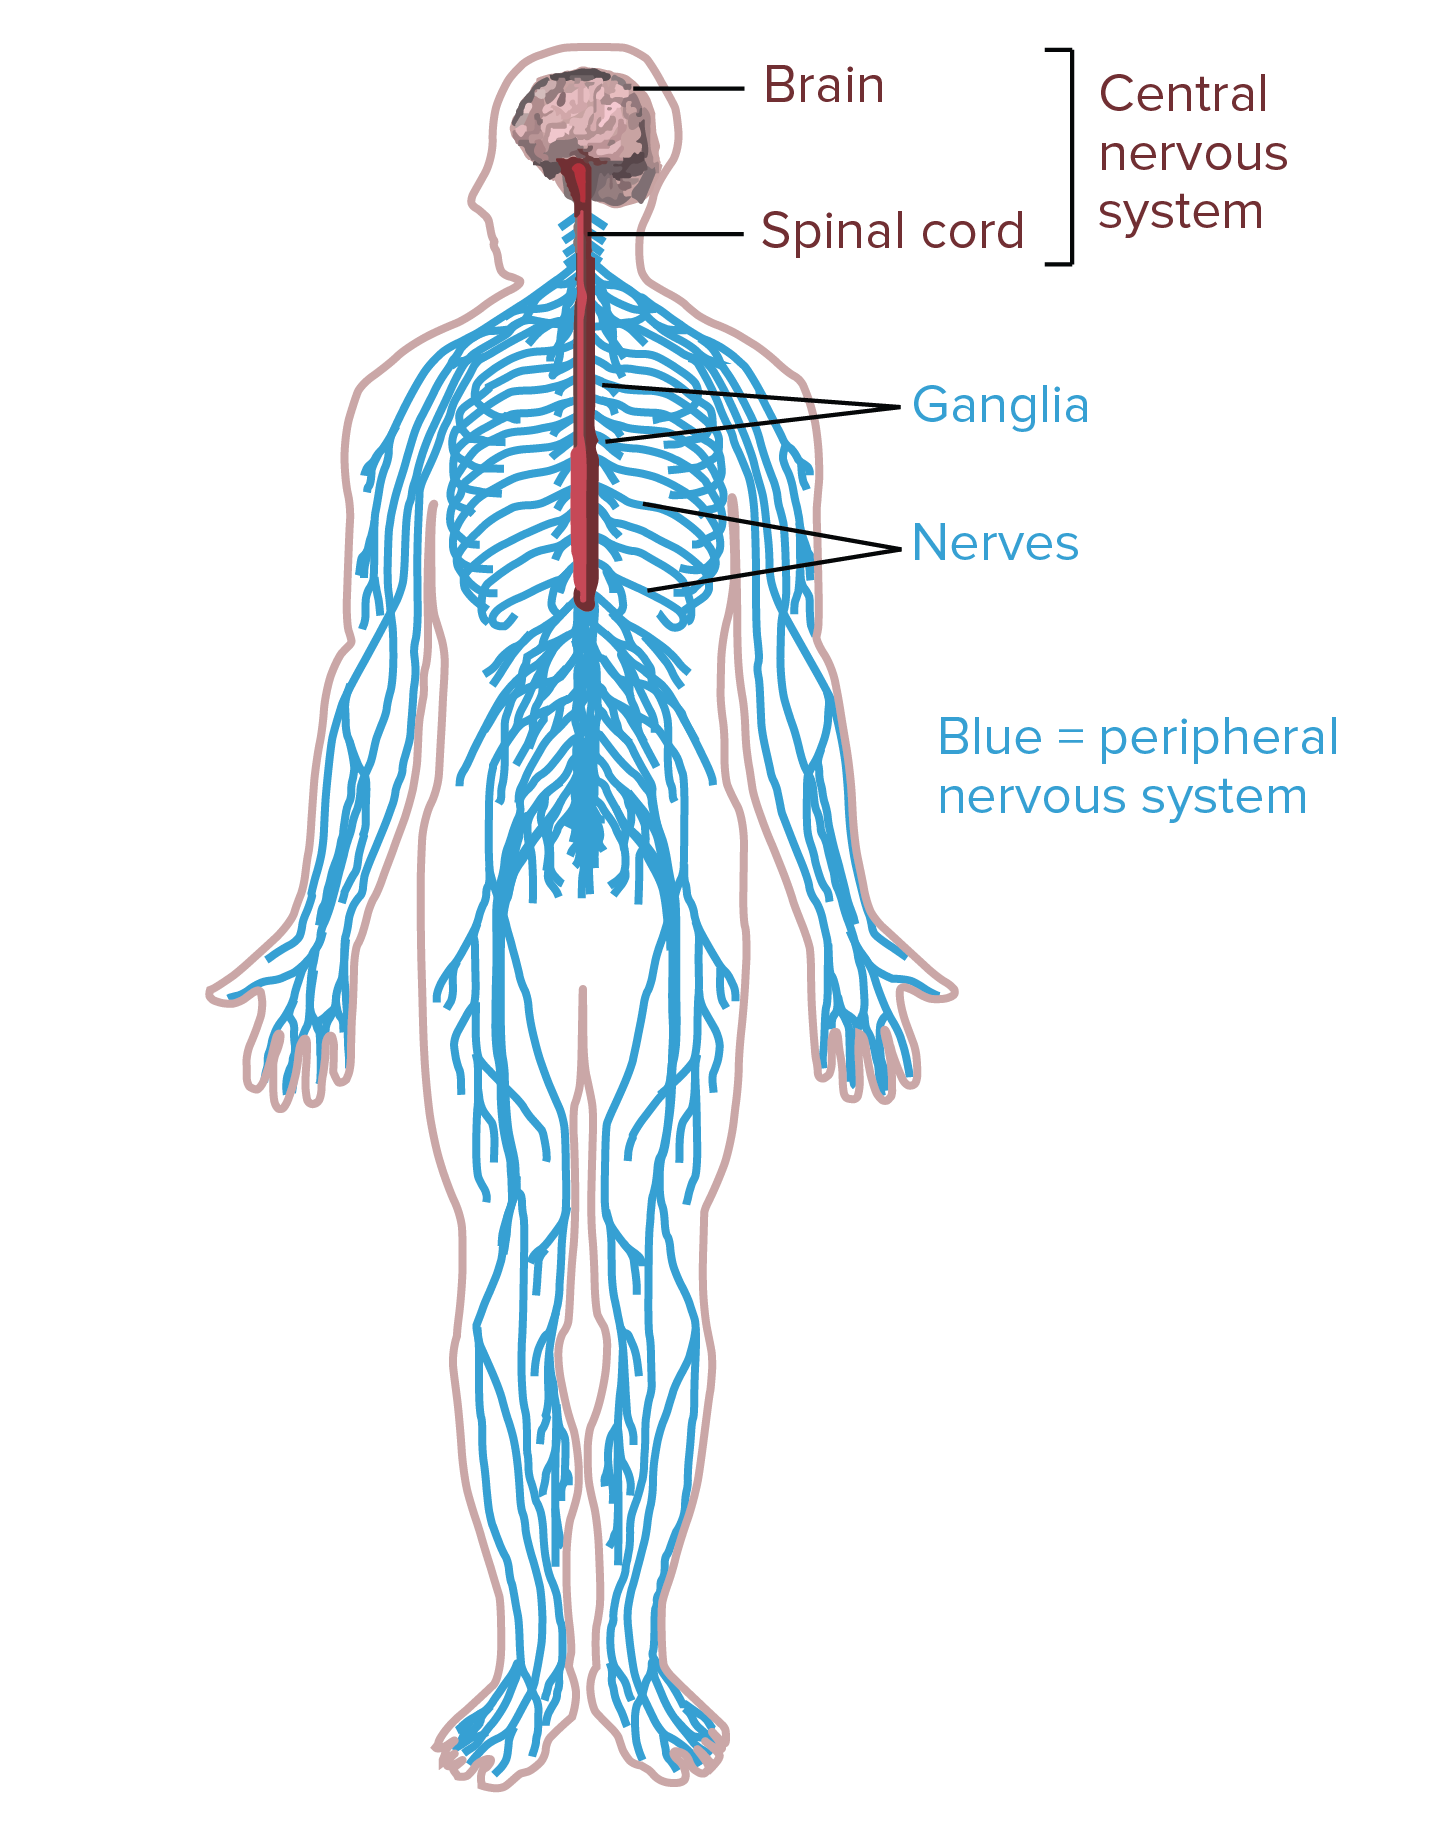 nervous system diagram full neorns - wiring diagrams